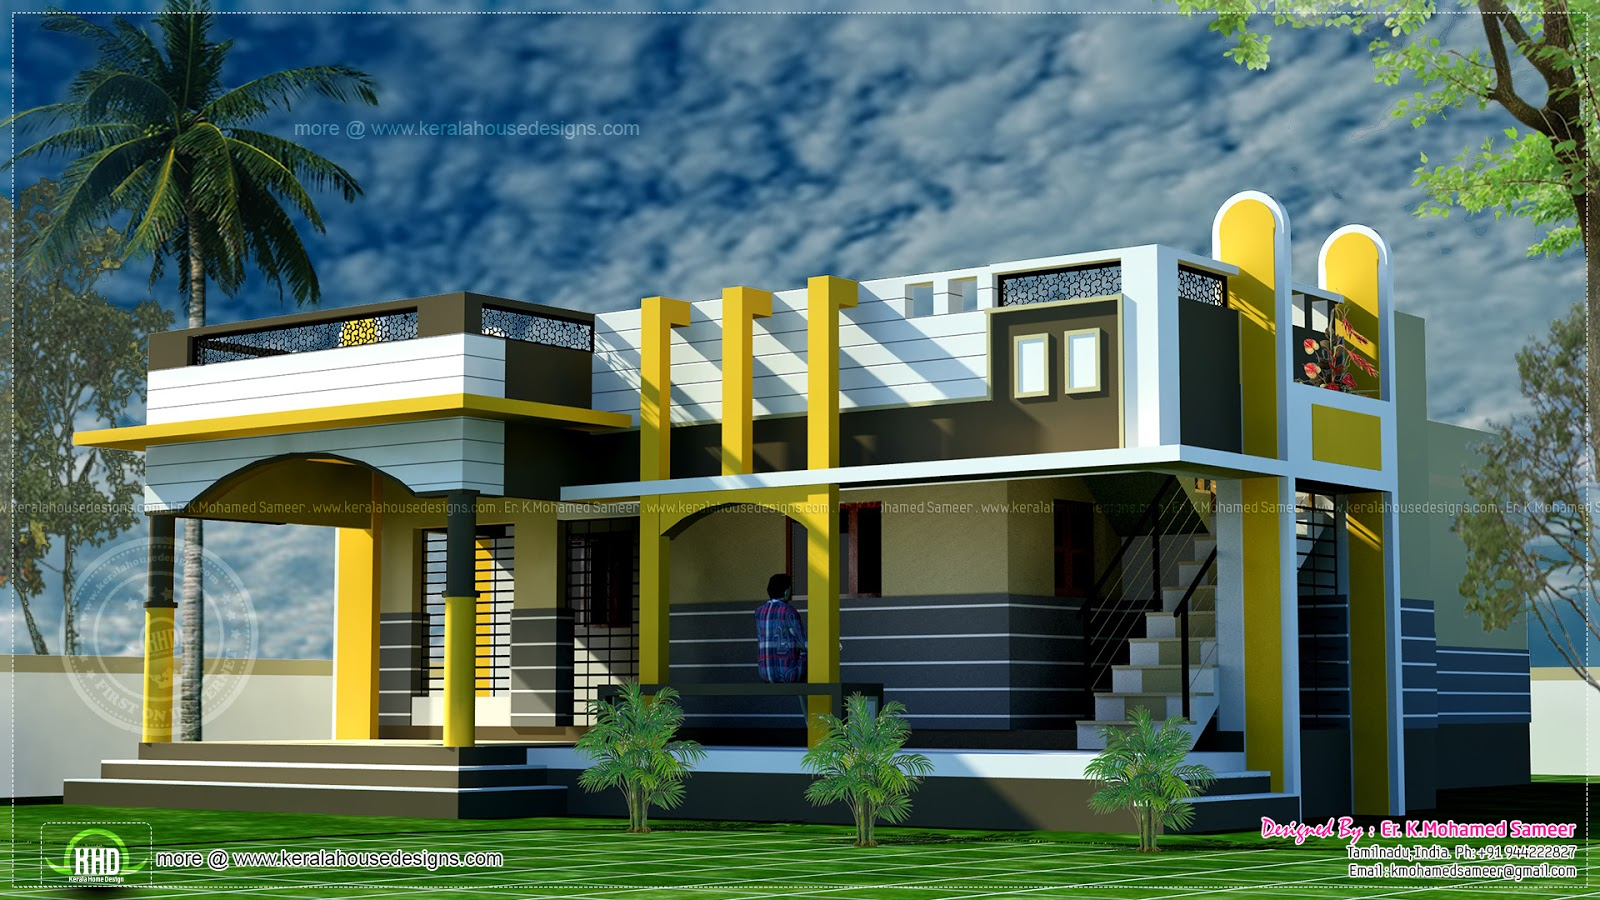 Small house design contemporary style kerala home design for Modern small home designs india